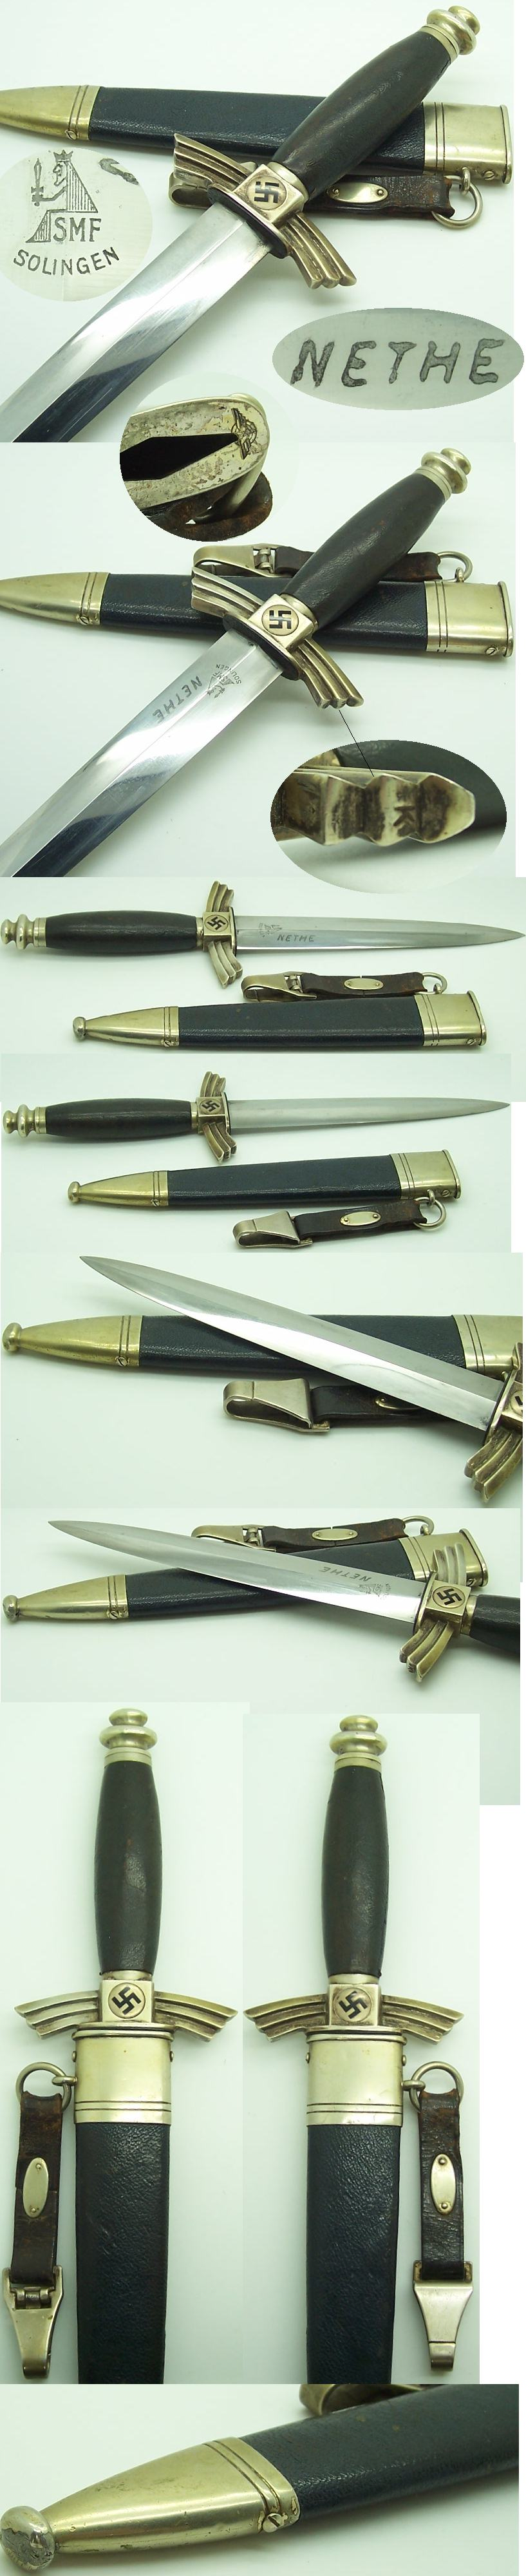 Personalized NSFK Dagger by SMF